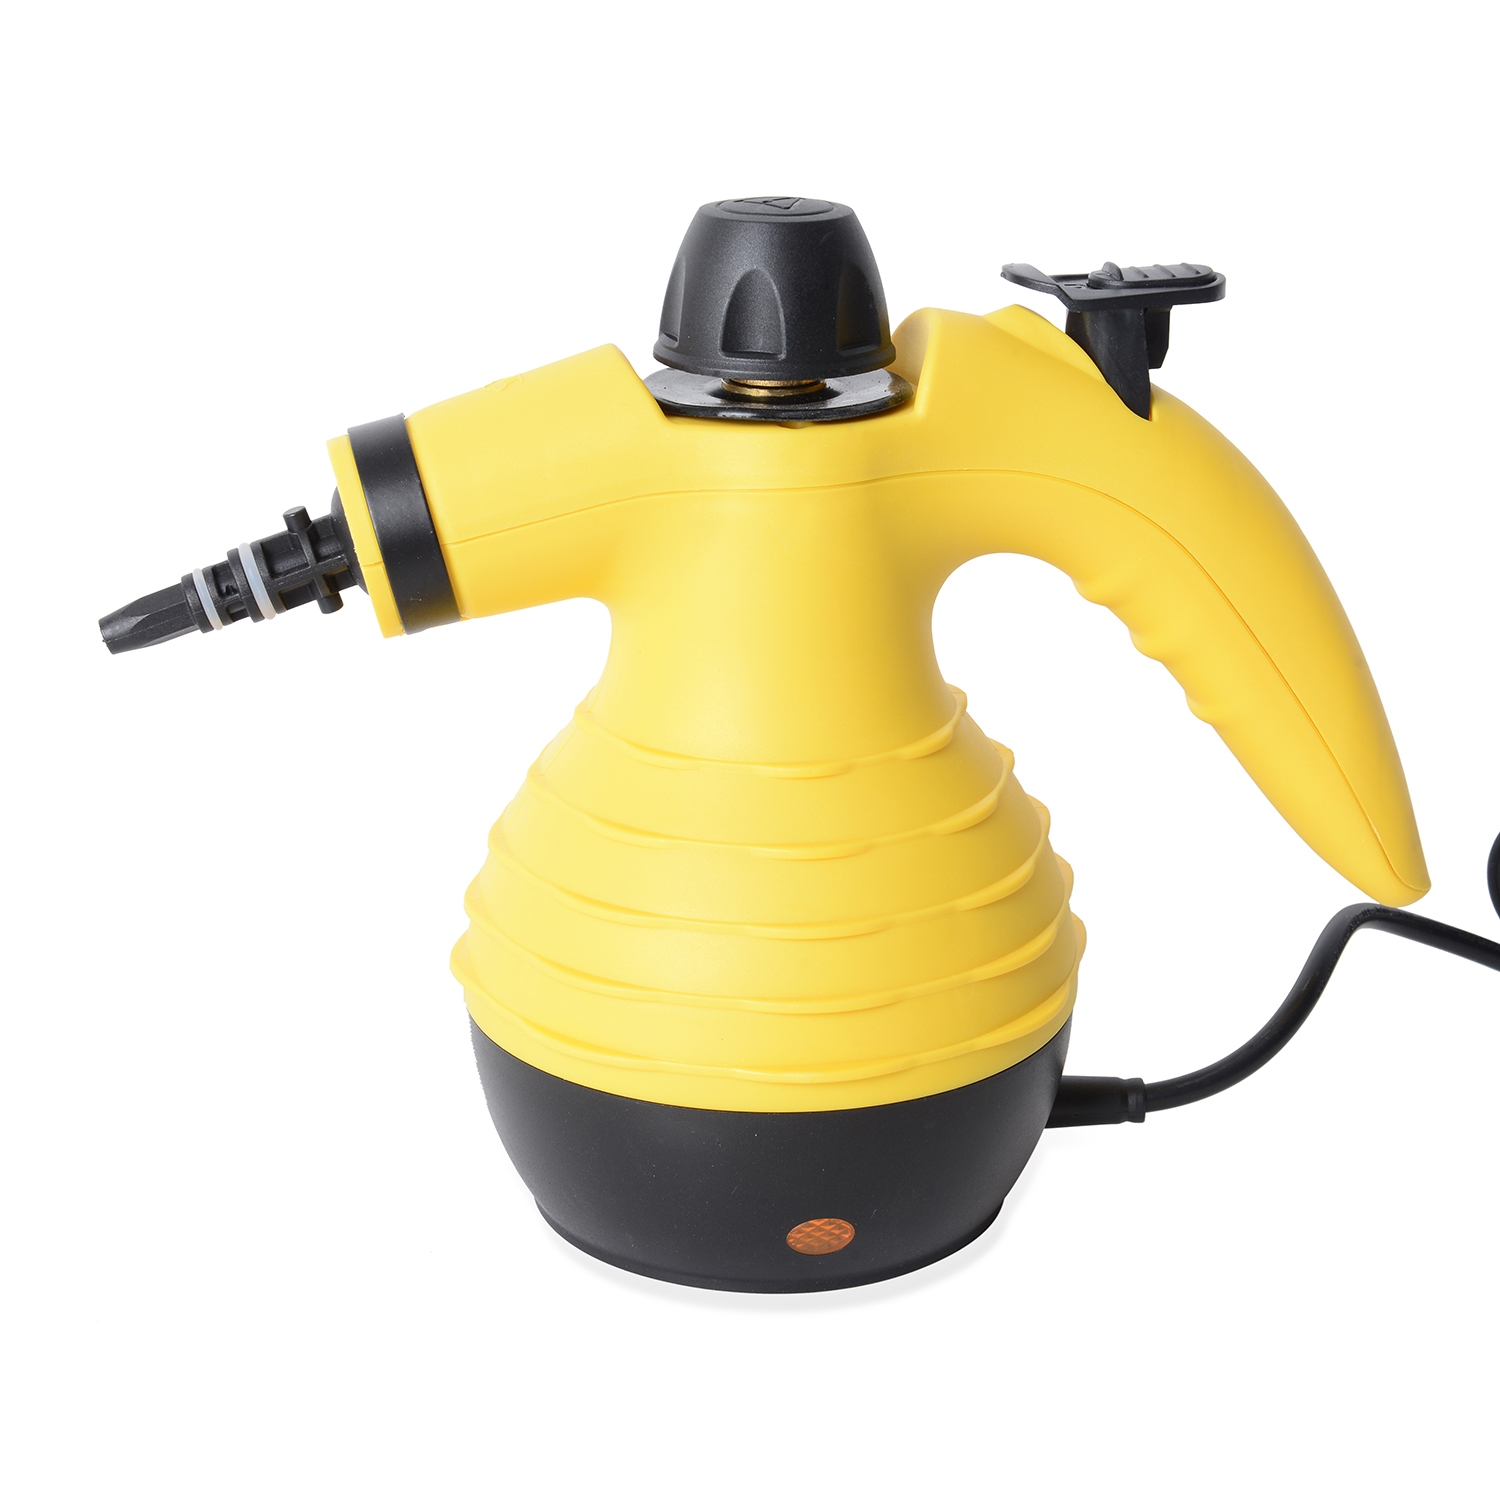 Homesmart Handheld Pressurized 9 in 1 Steam Cleaner for Cleaning Mopping Yellow